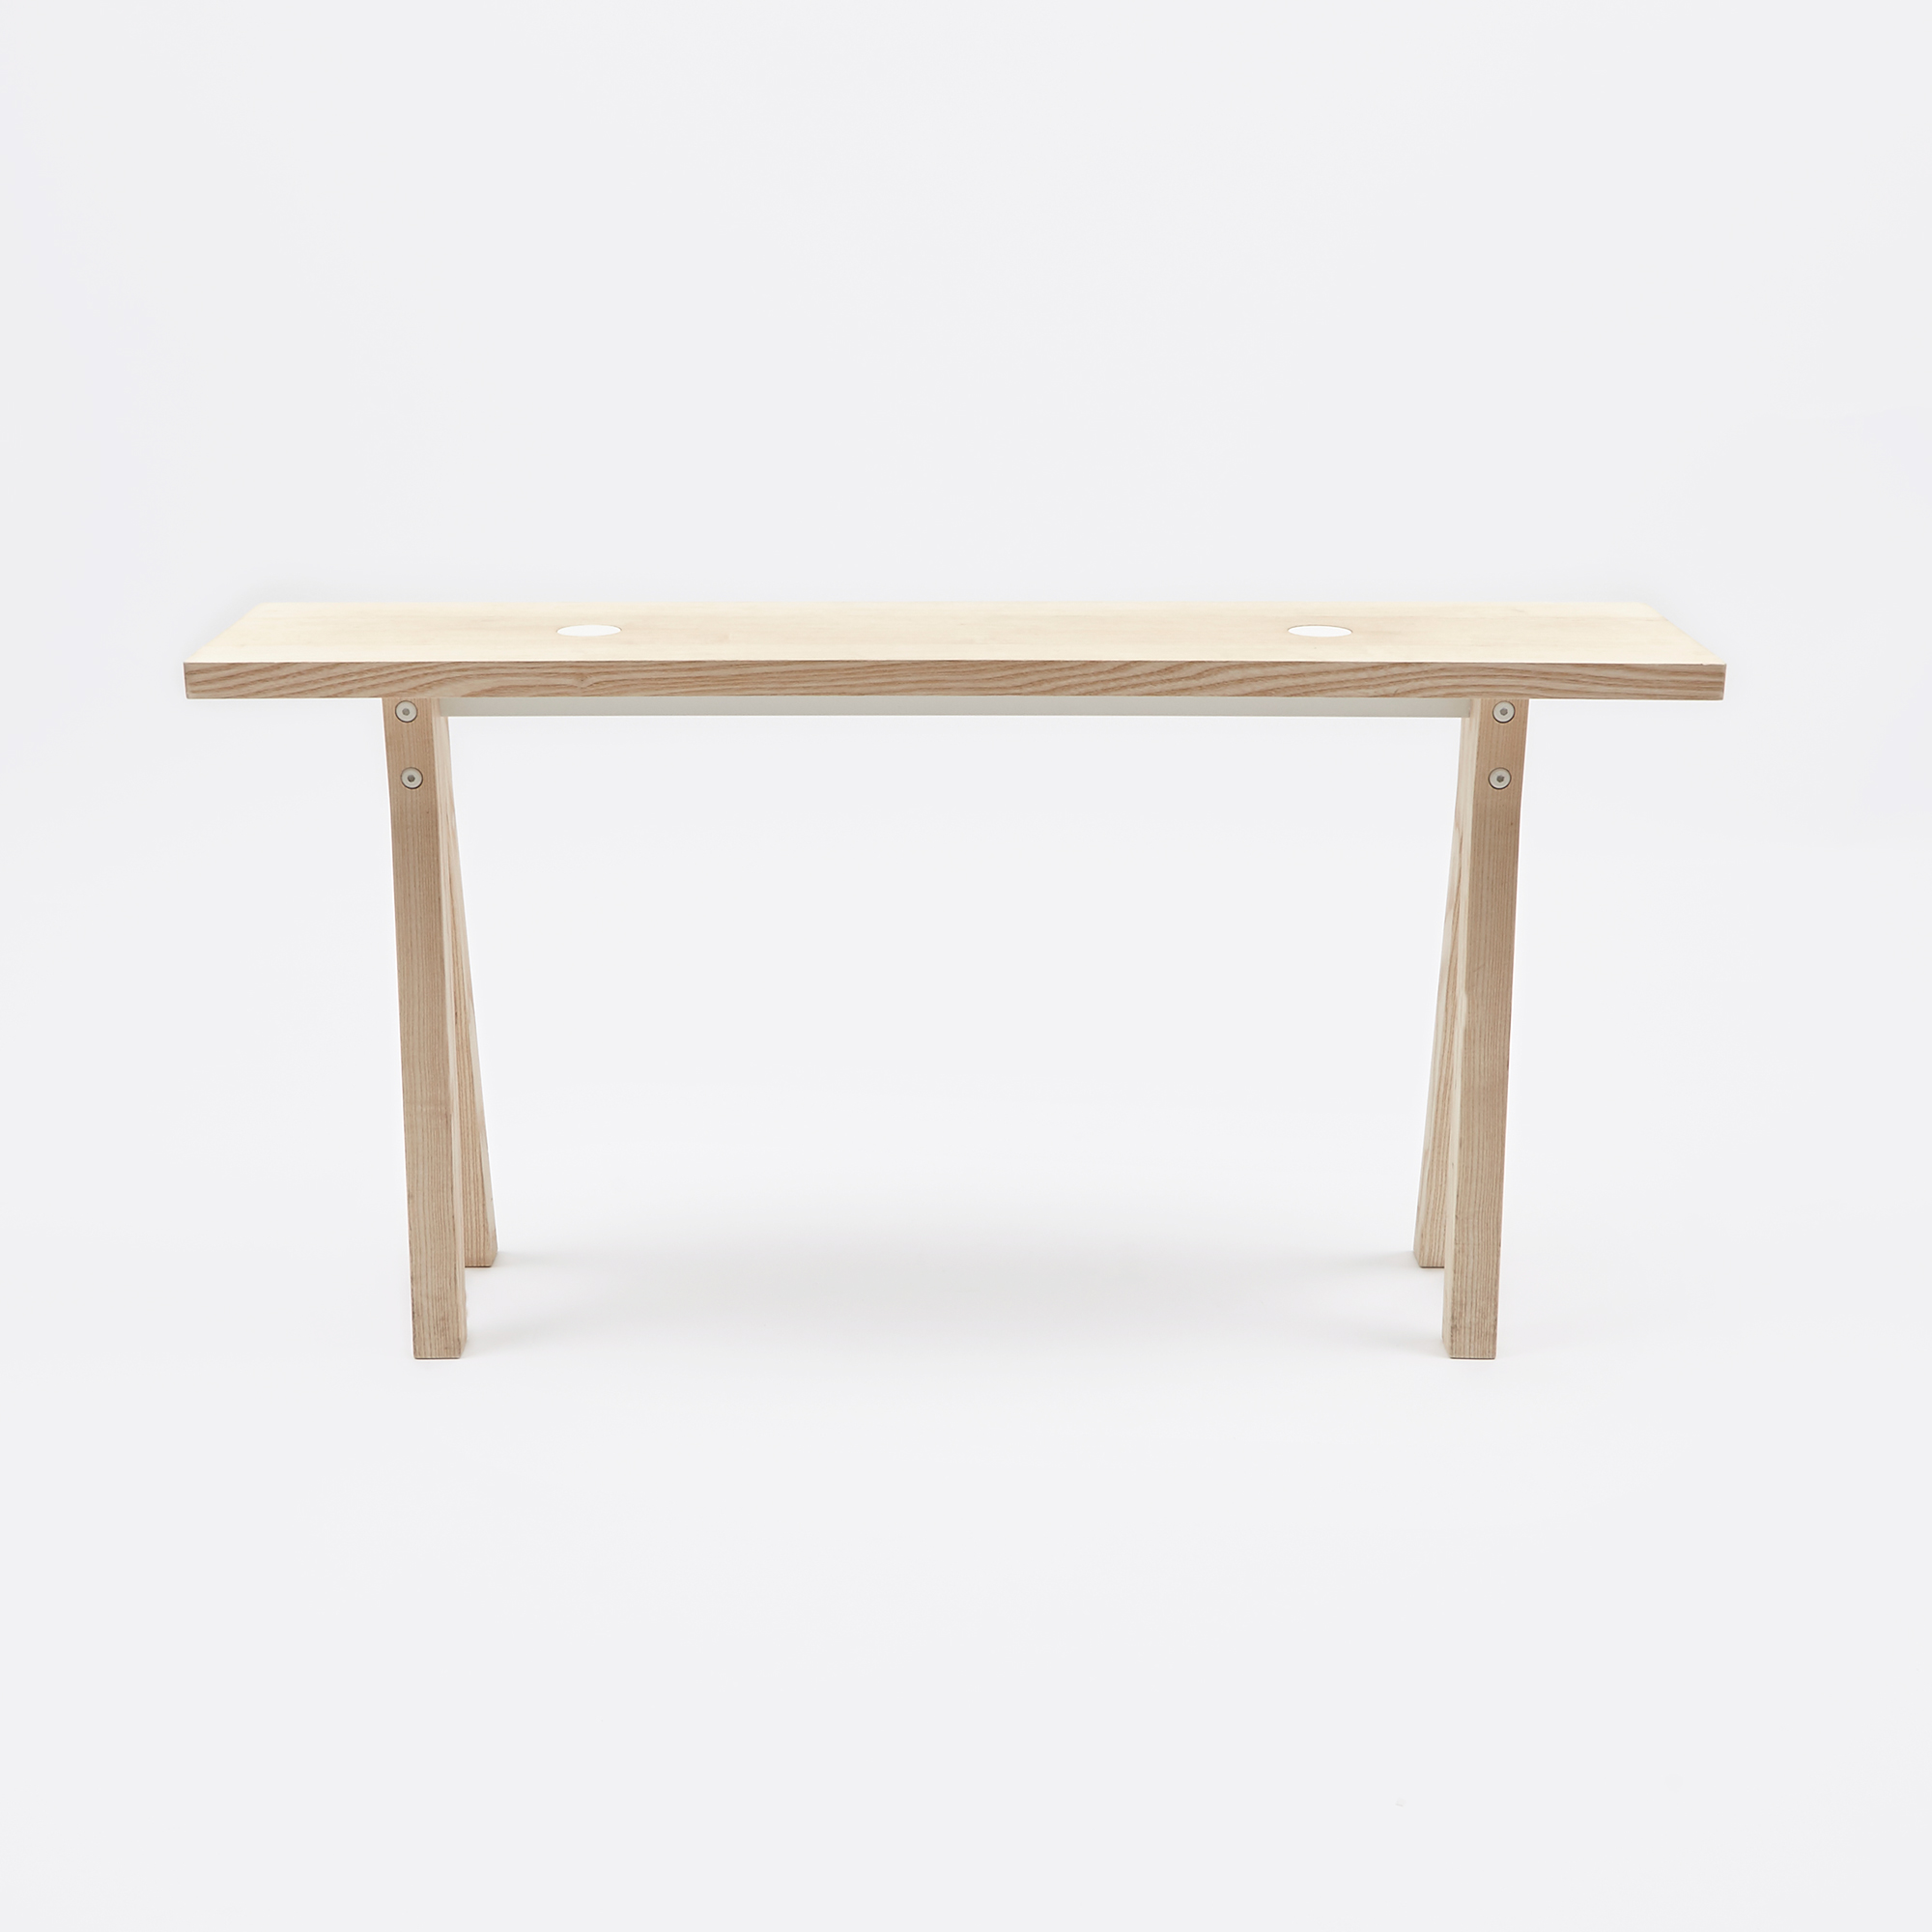 back org with legs trestle bench studentsserve designs seat viccarbe plans nz